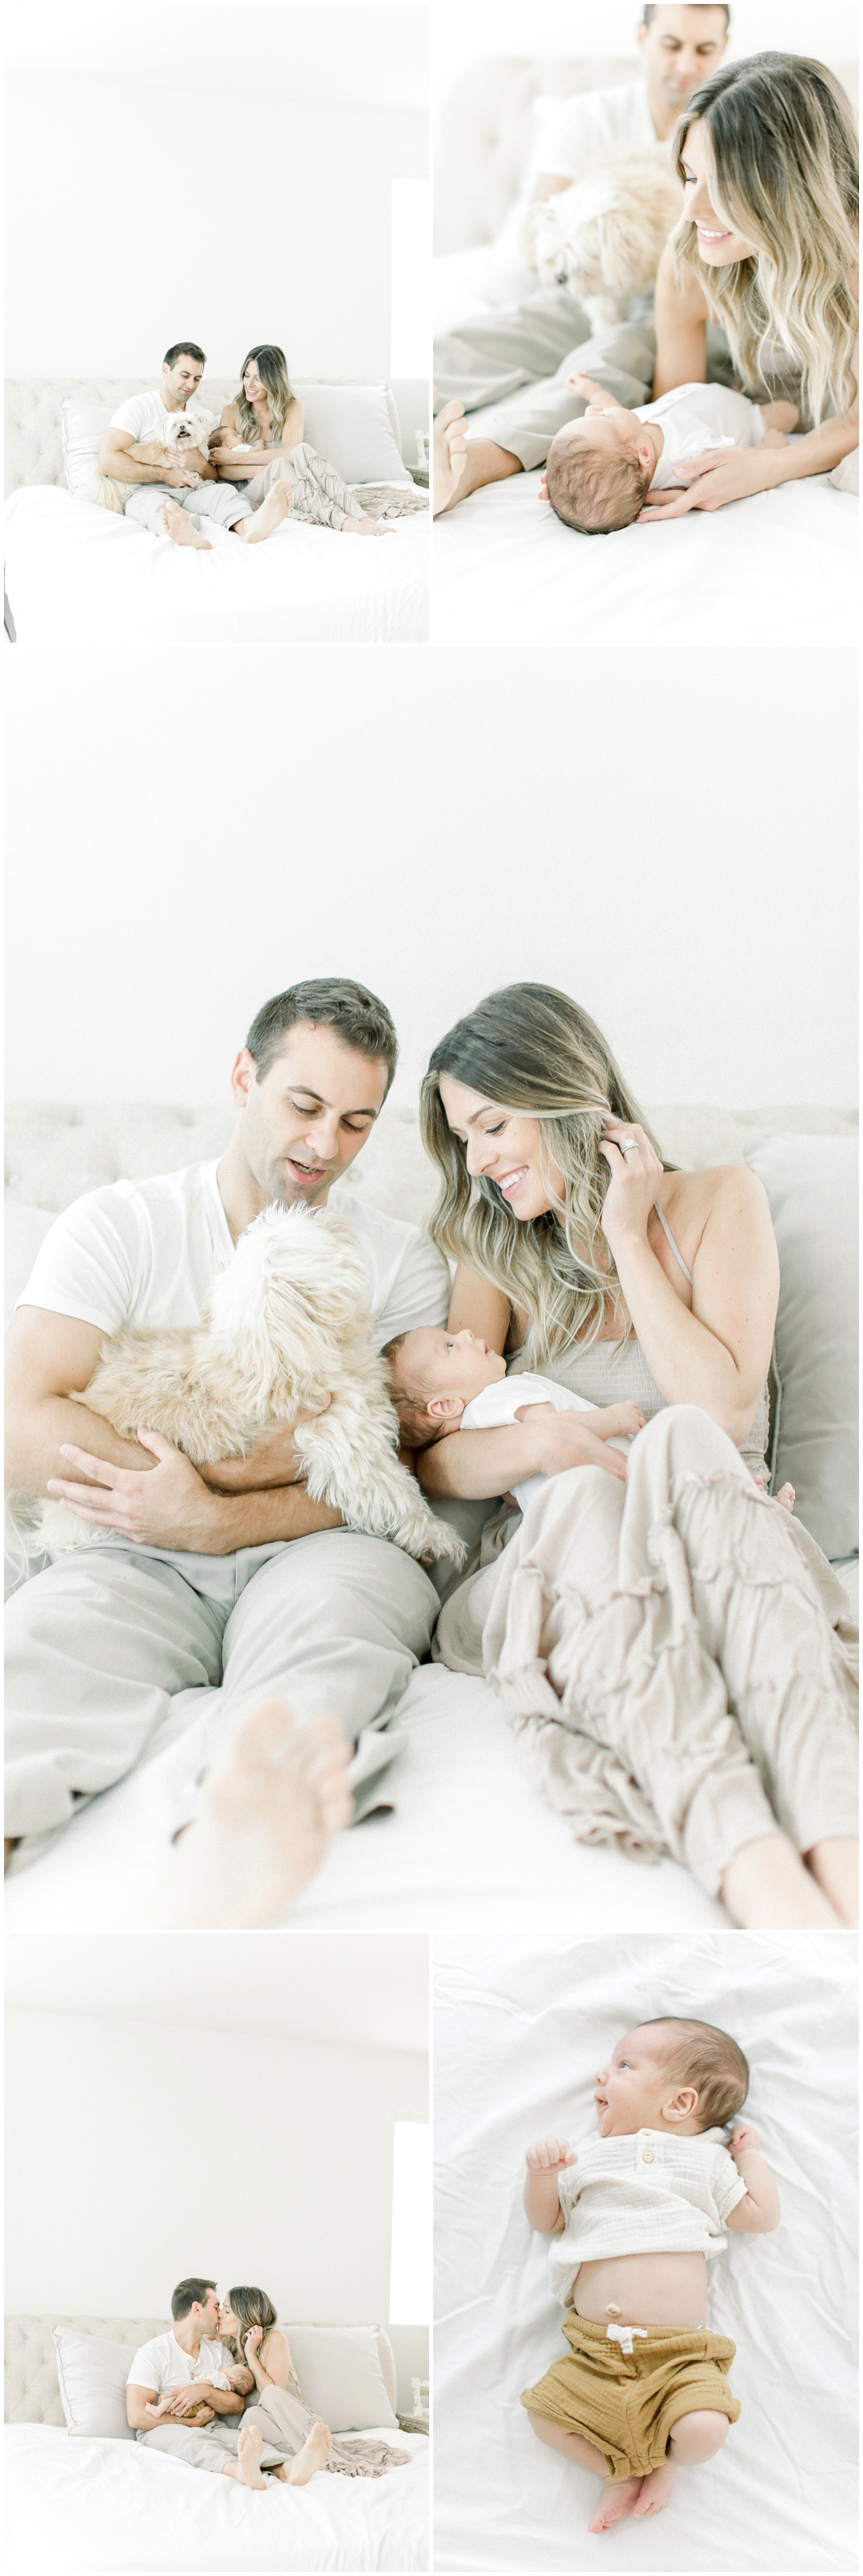 Newport_Beach_Newborn_Session_Orange_County_Family_Photographer_Danielle_Saluan__4289.jpg